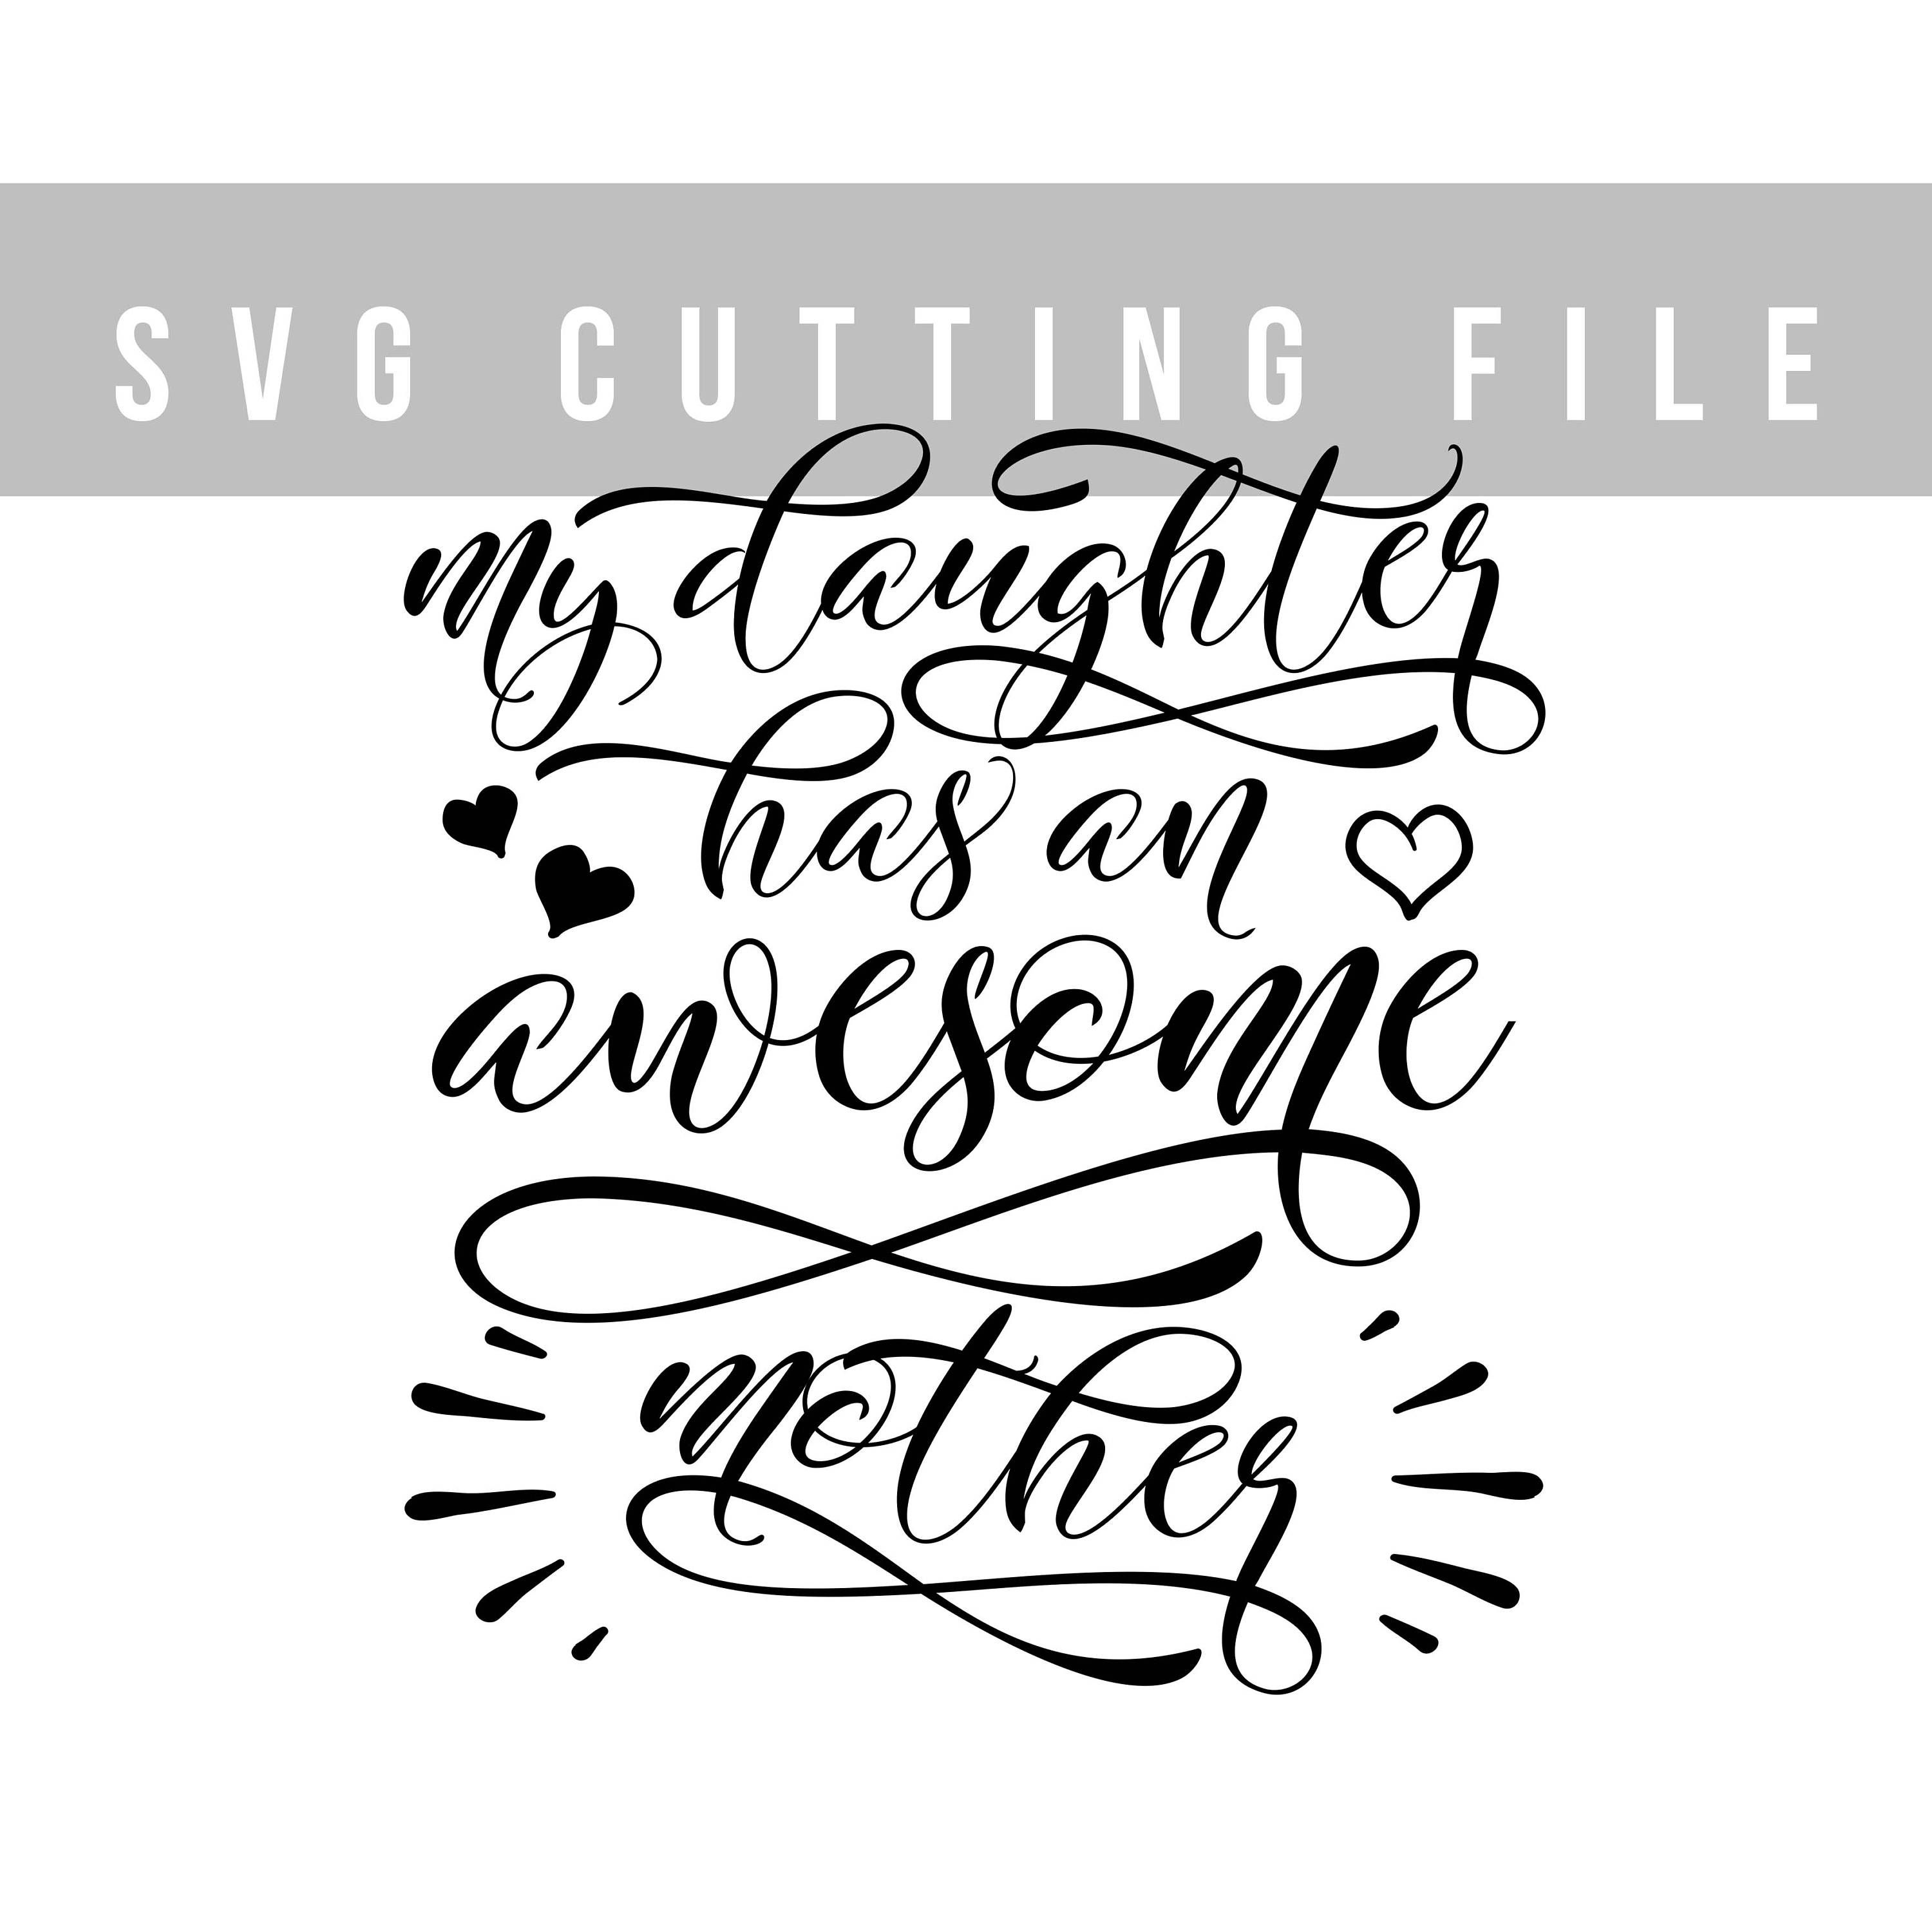 Free Send us your image or idea. Pin On Pinter Etsy Small Biz Group SVG, PNG, EPS, DXF File